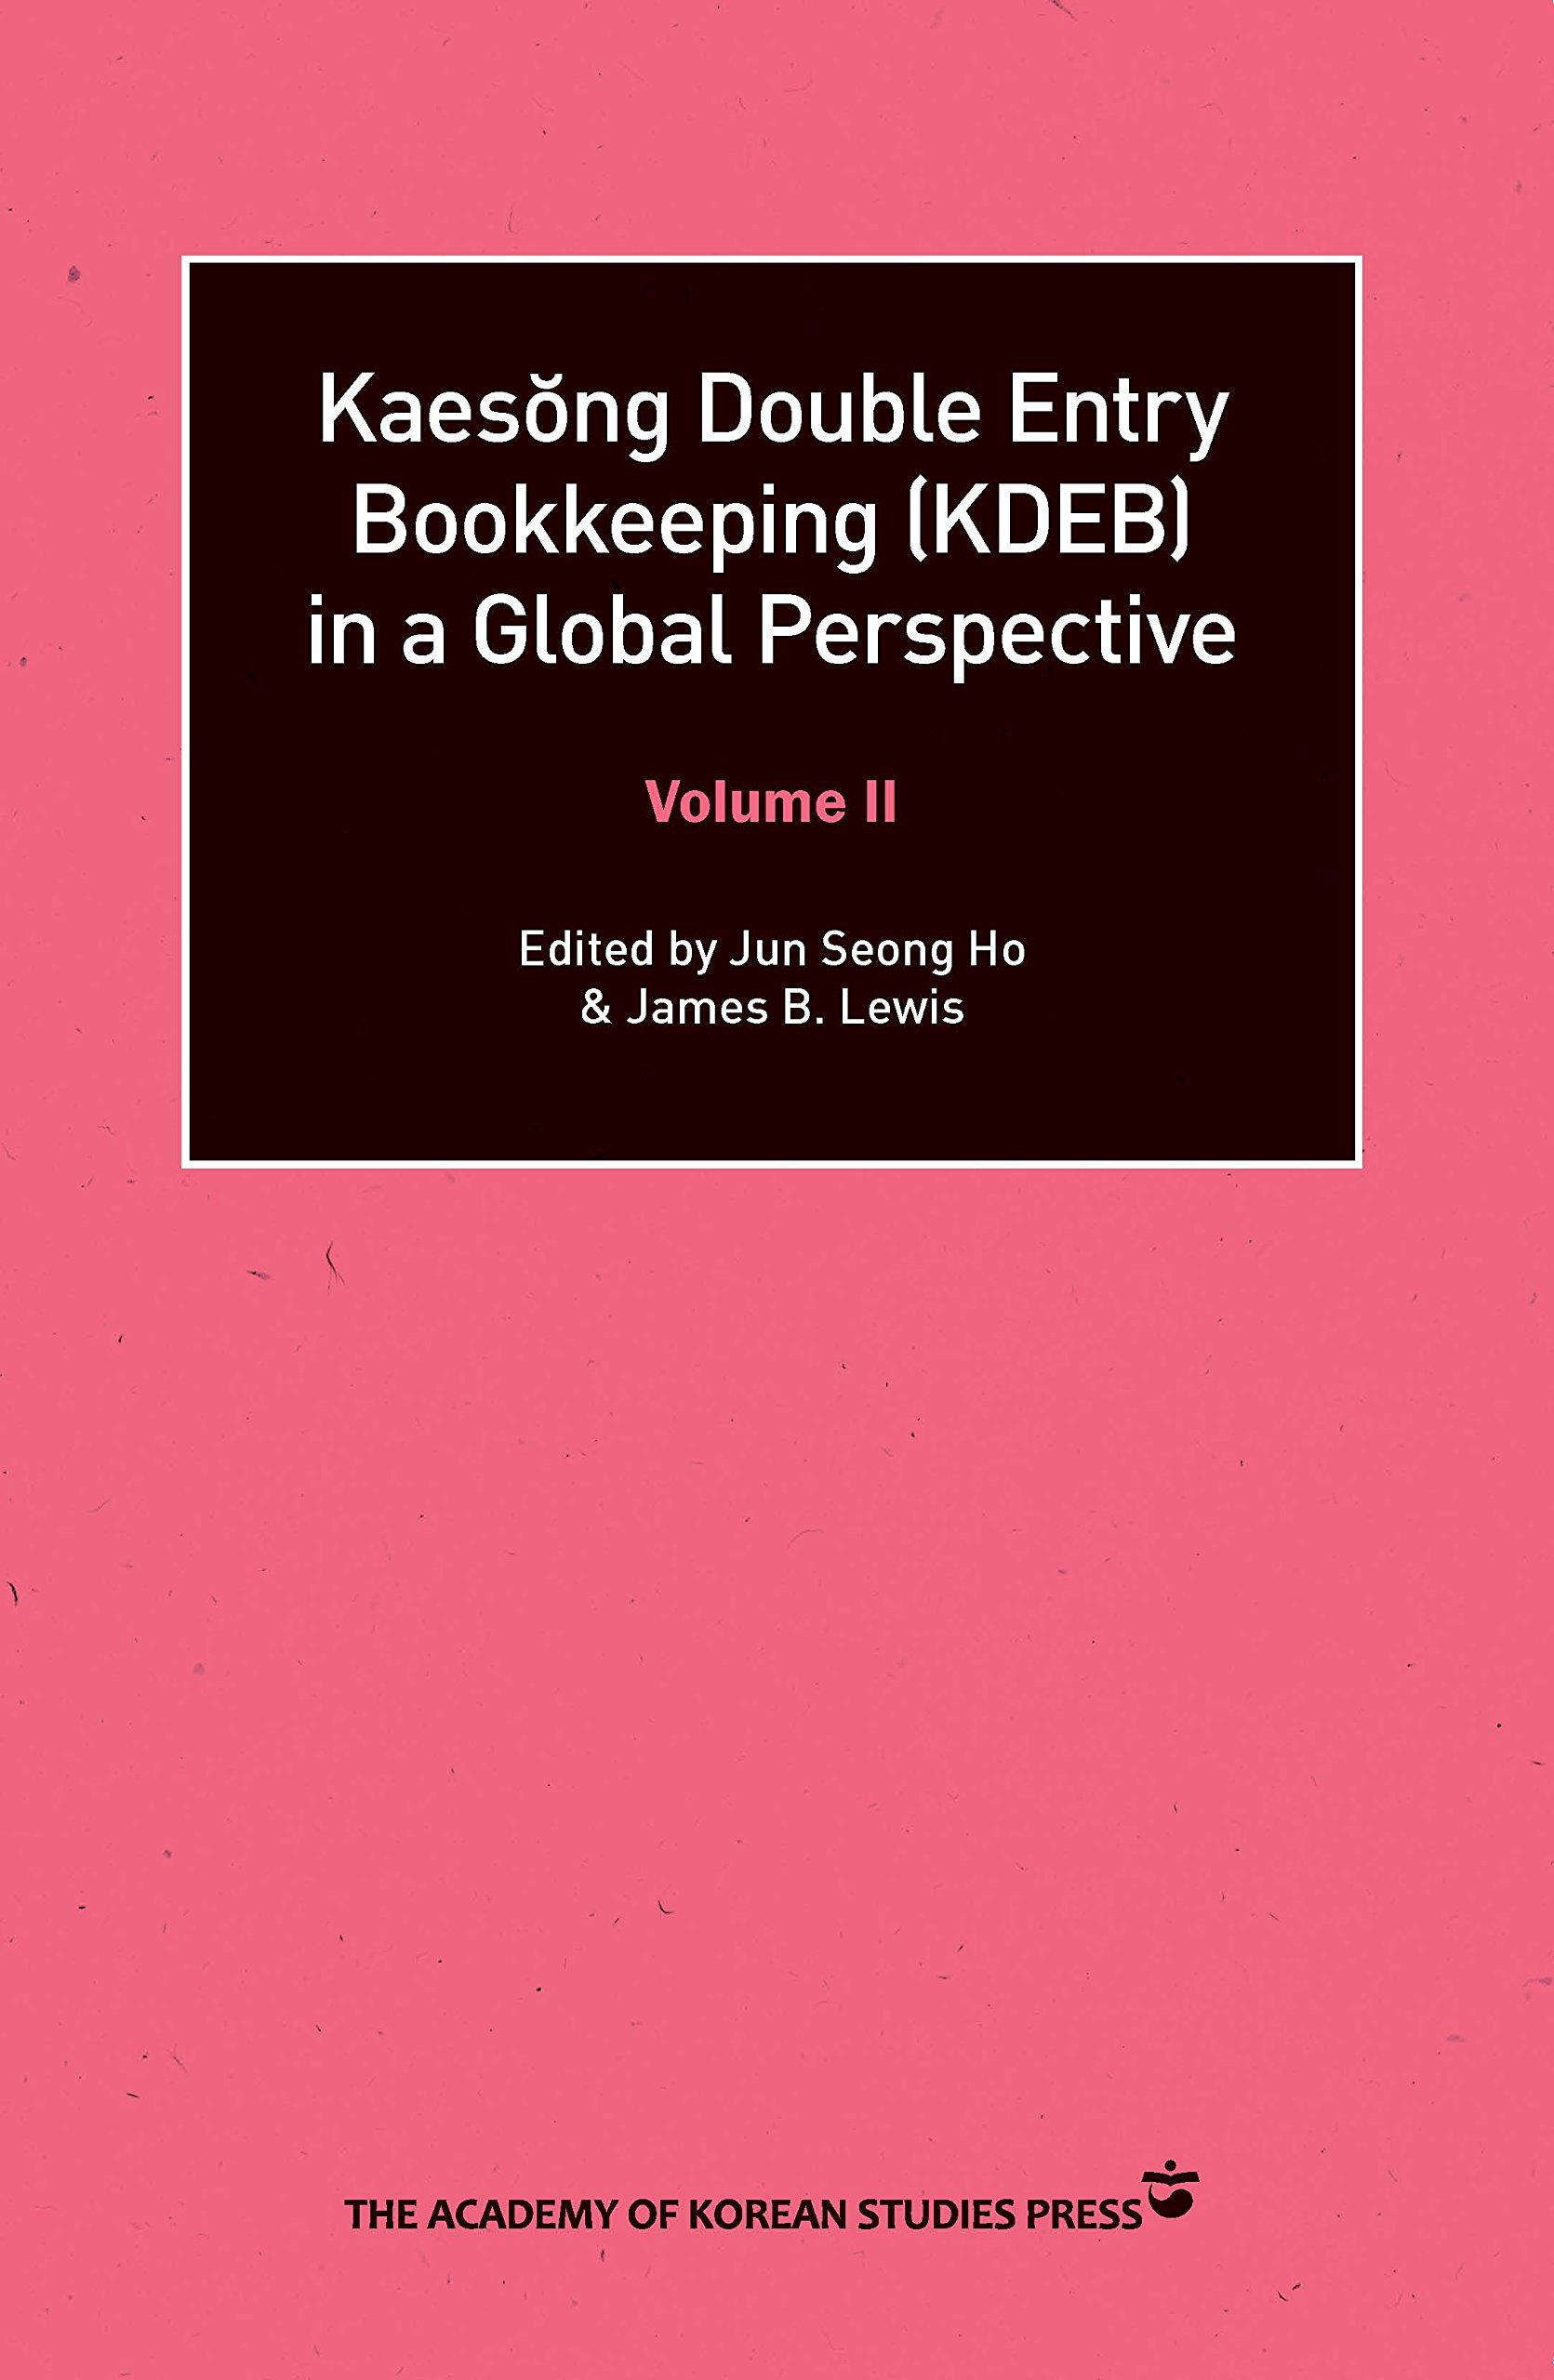 Download Kaesong Double Entry Bookkeeping (KDEB) in a Global Perspective Volume II PDF